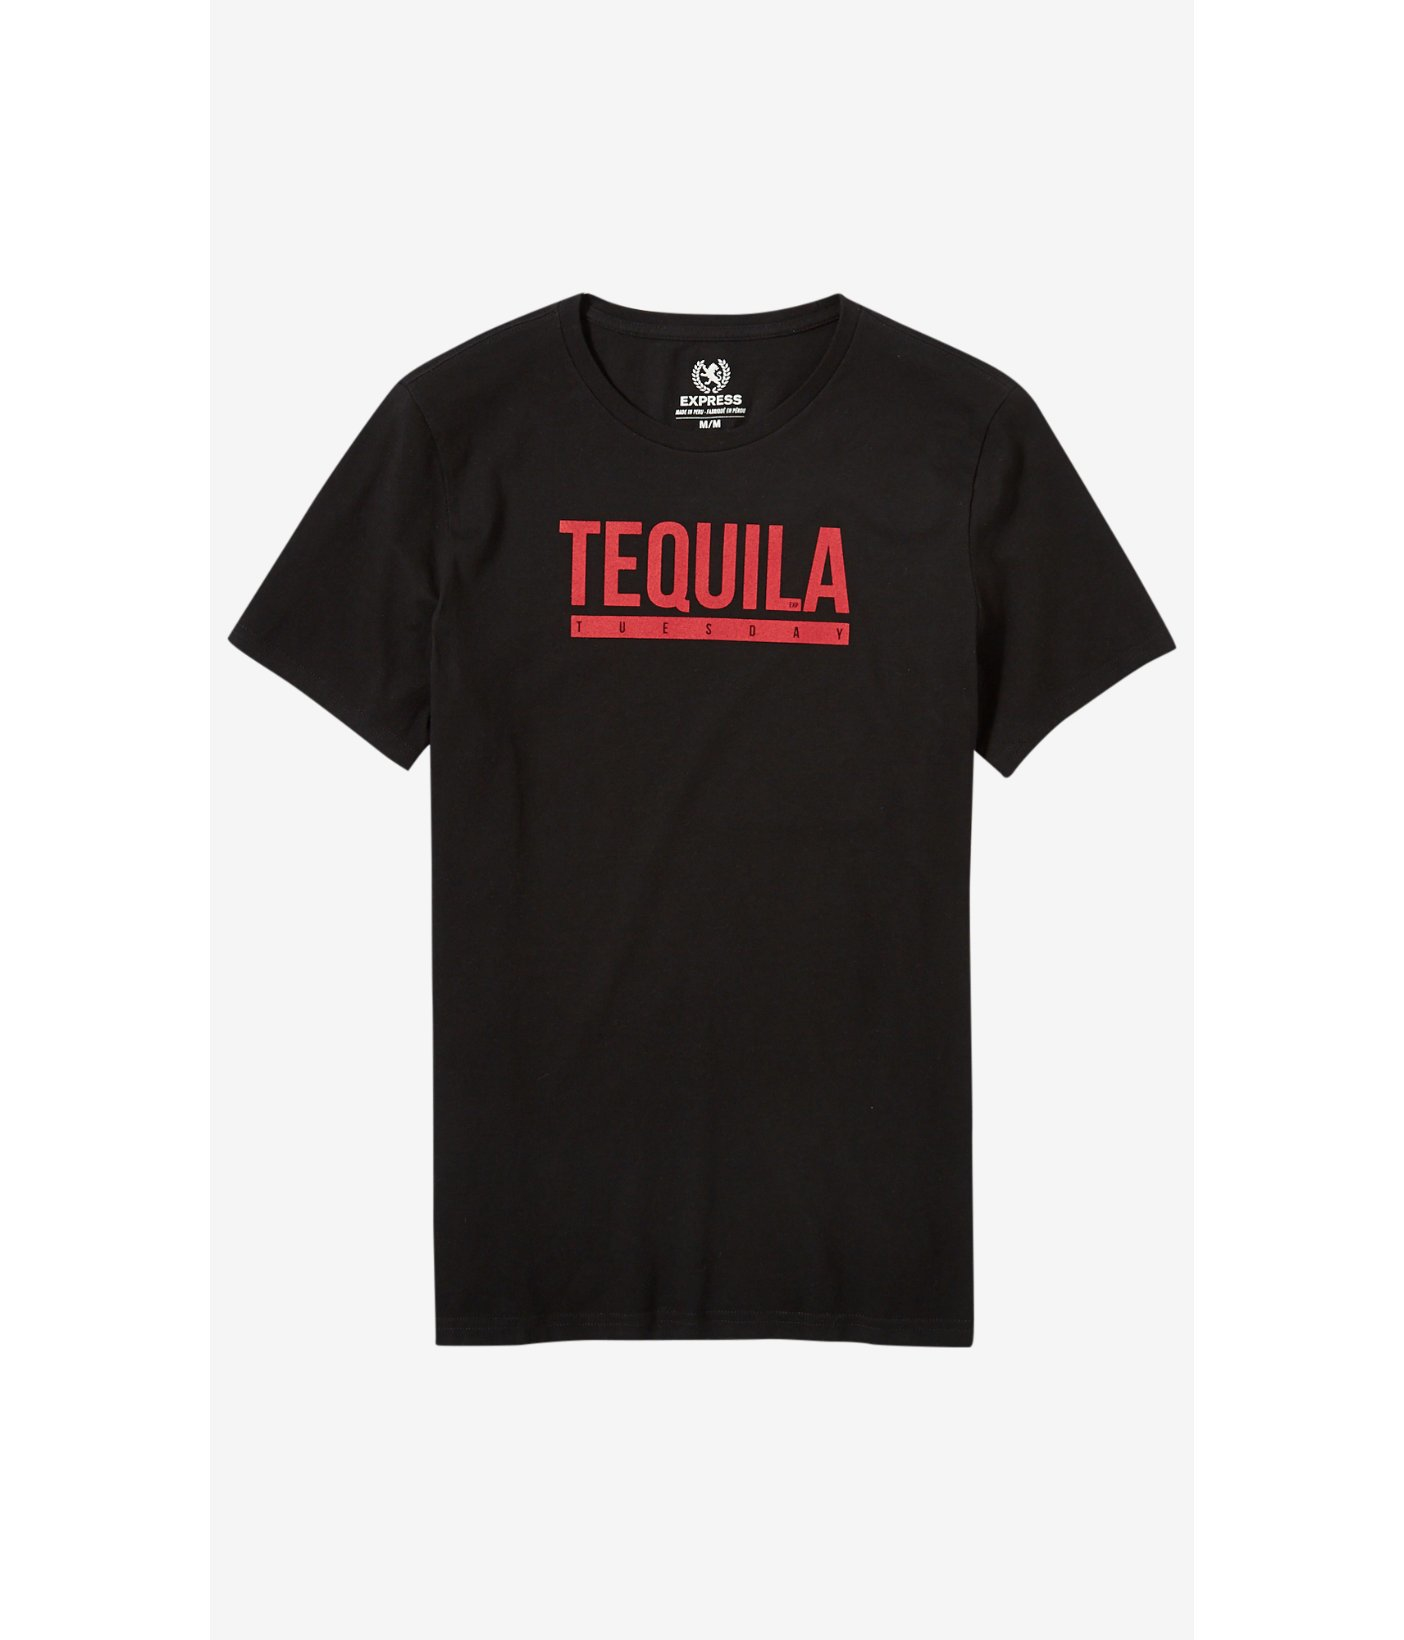 Express Black Tequila Tuesday Graphic T Shirt In Black For